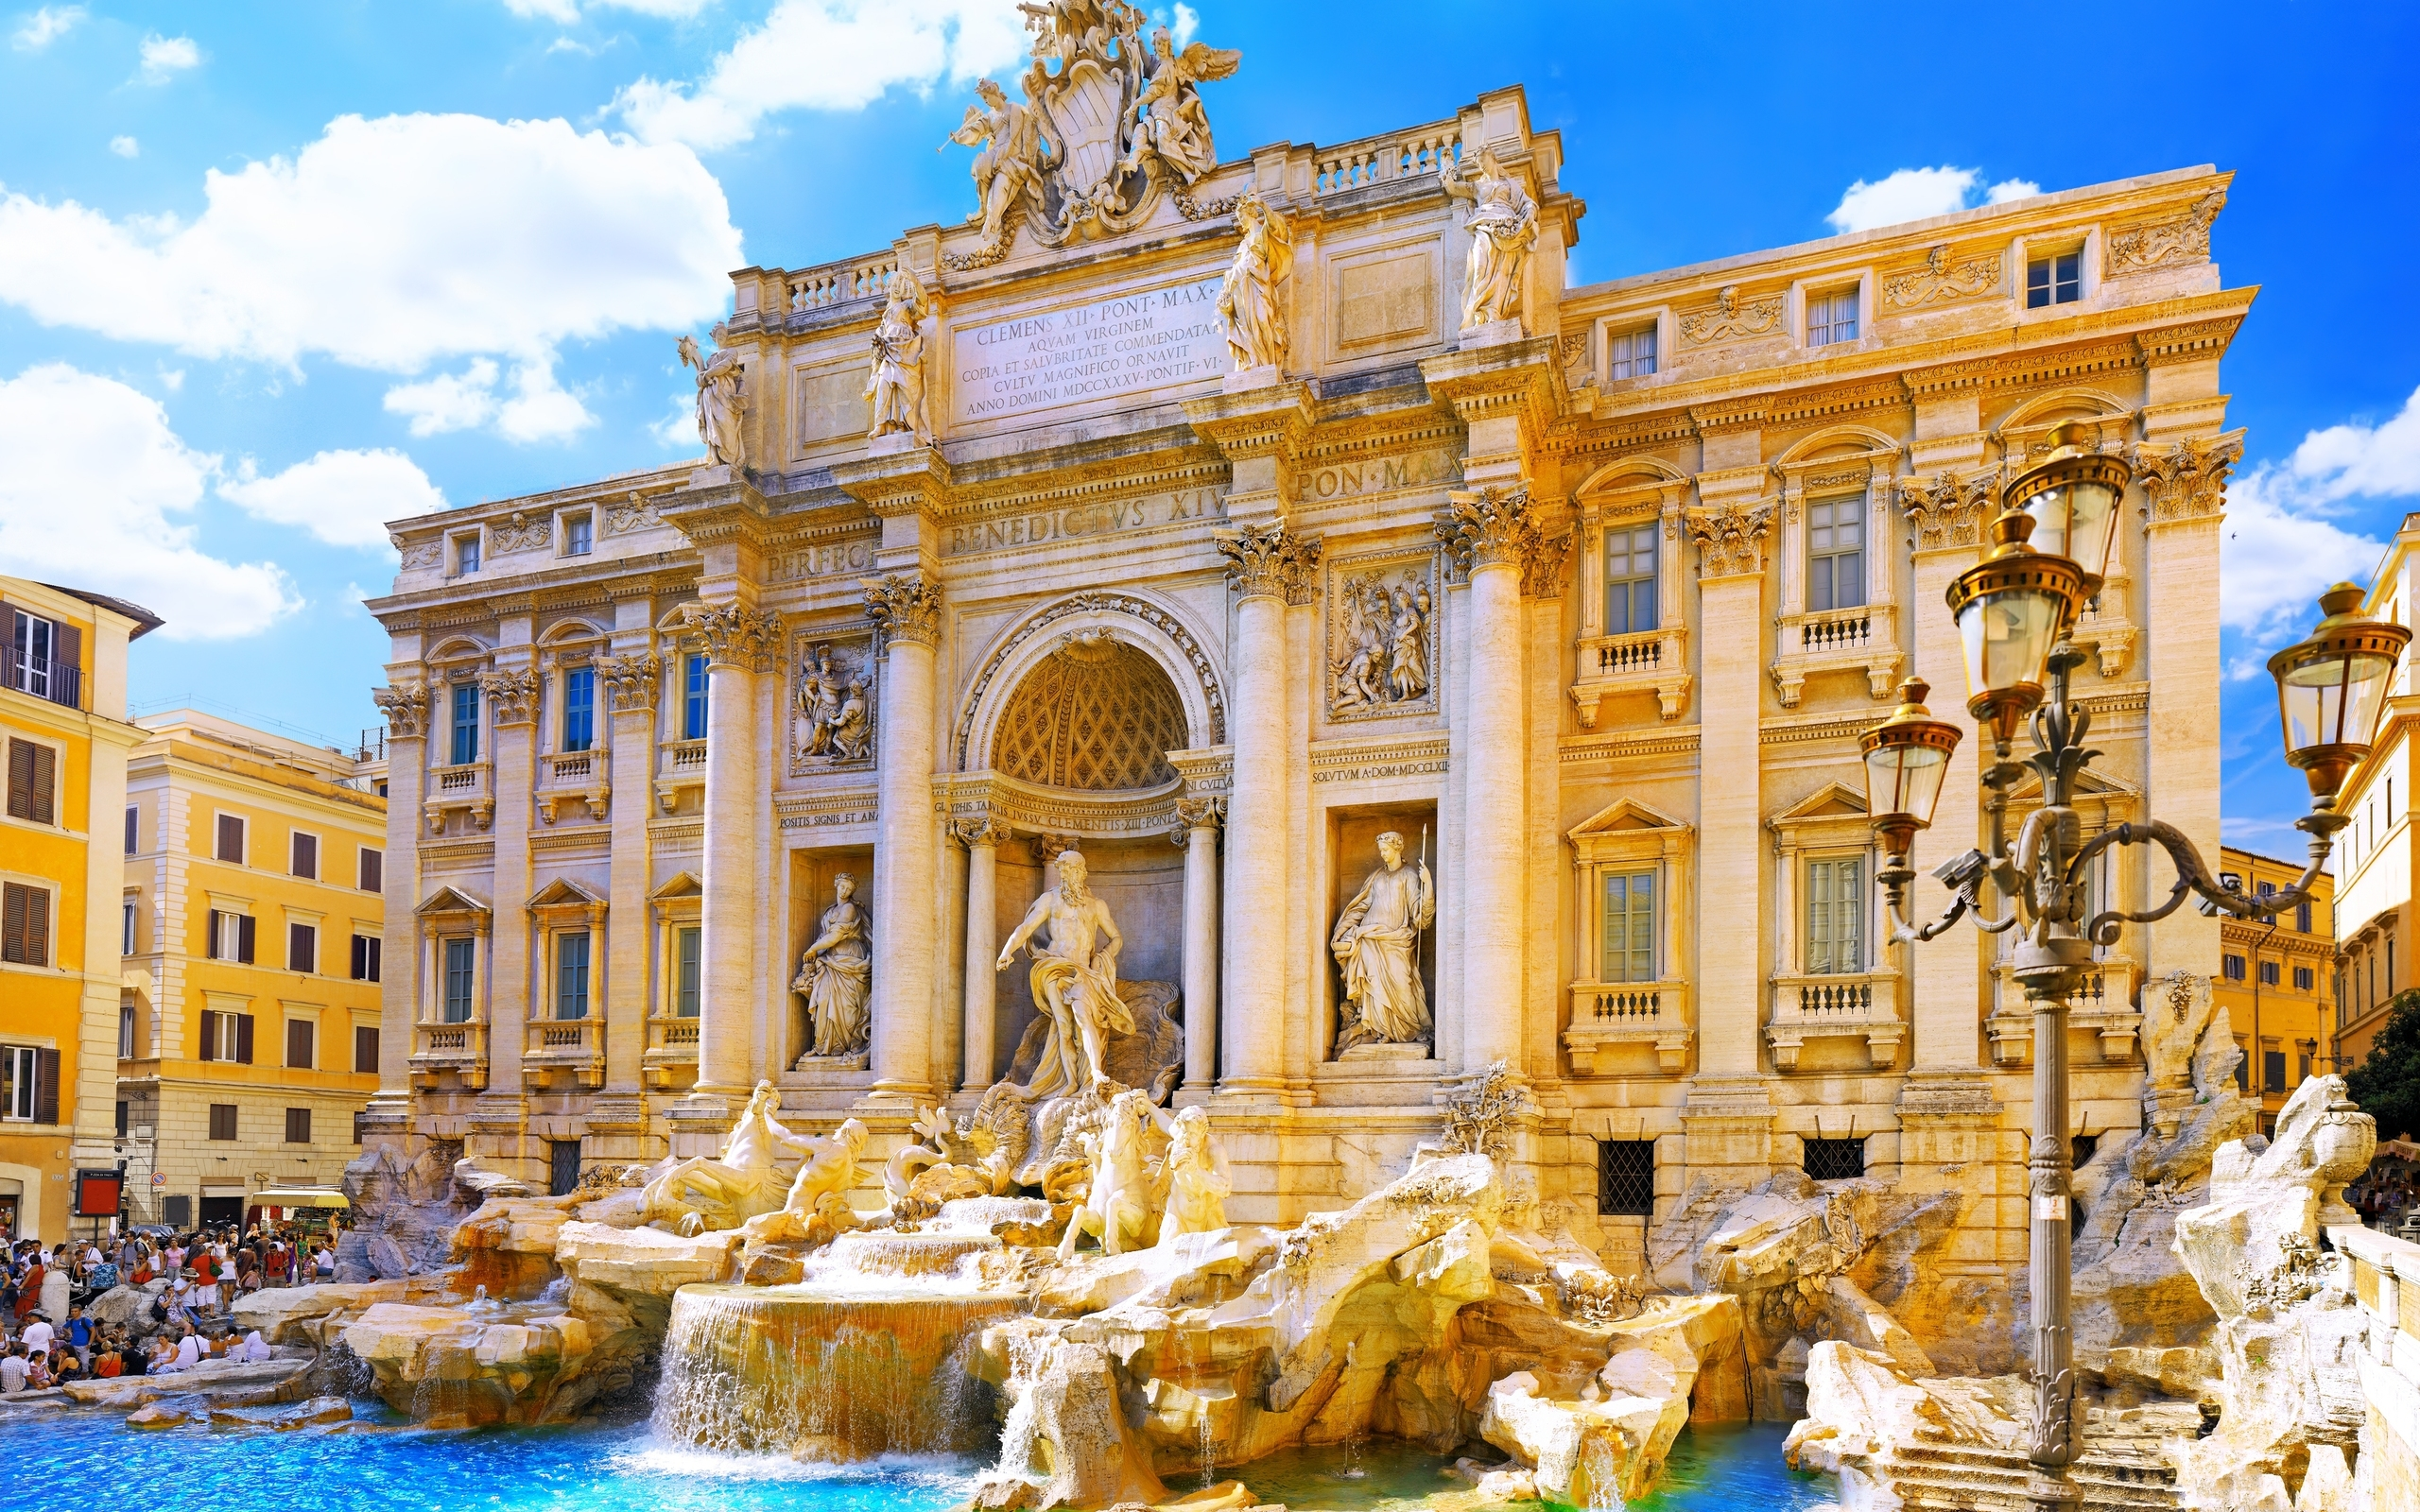 The Trevi Fountain, Rome, Italy, Europe